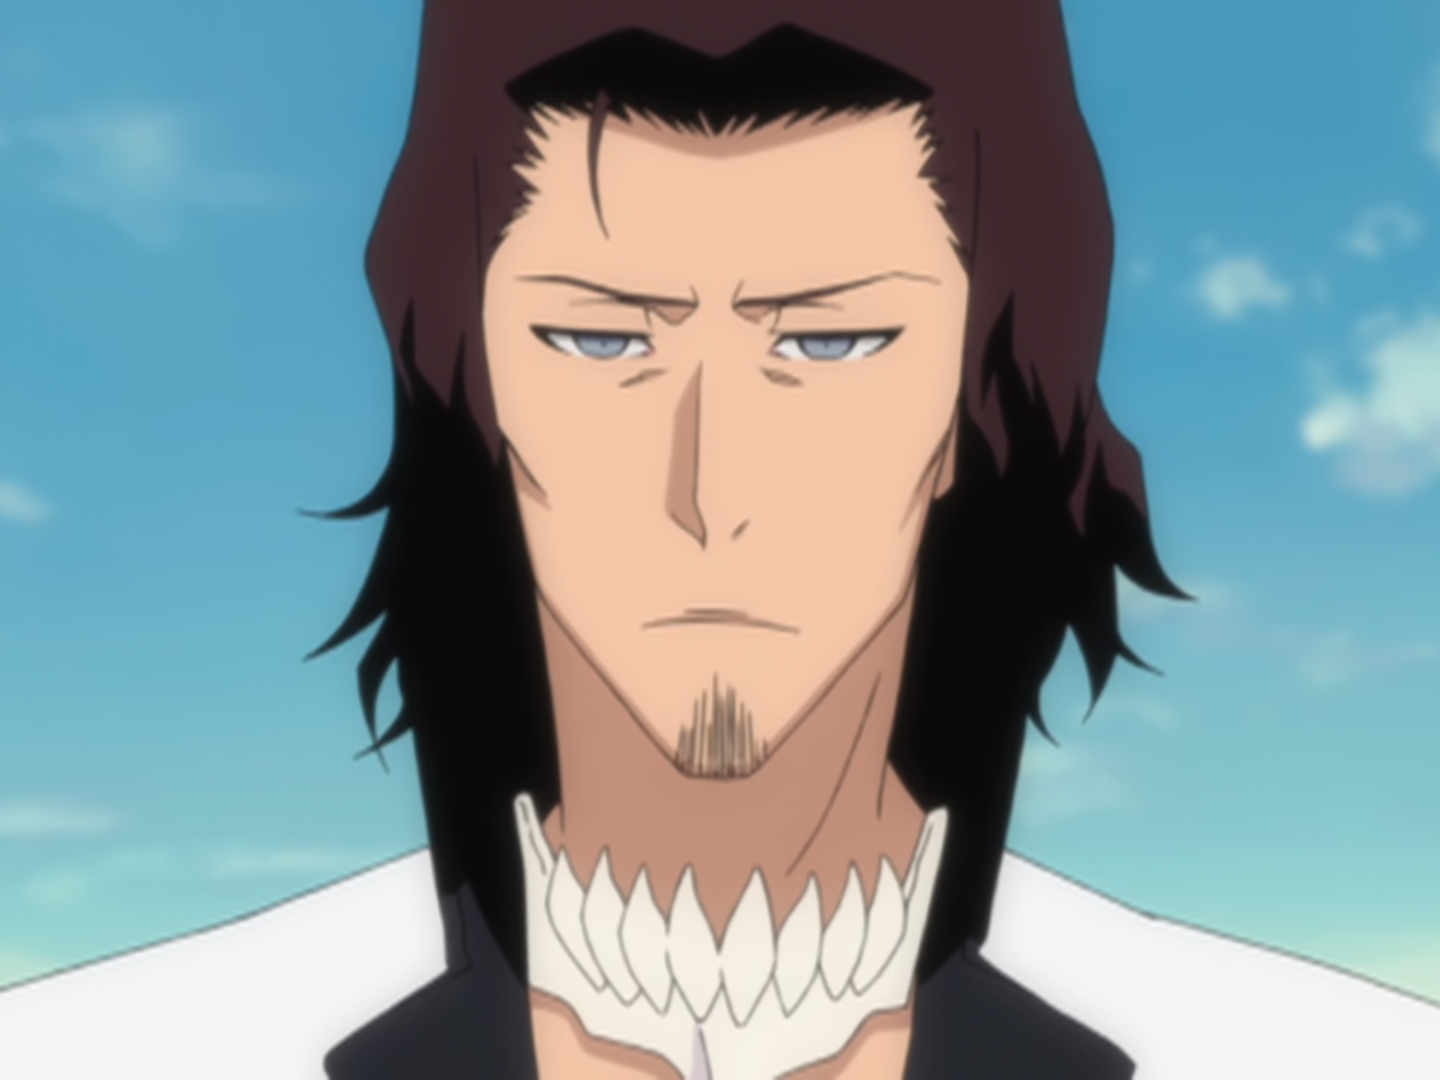 Coyote Starrk | Bleach Wiki | FANDOM powered by Wikia